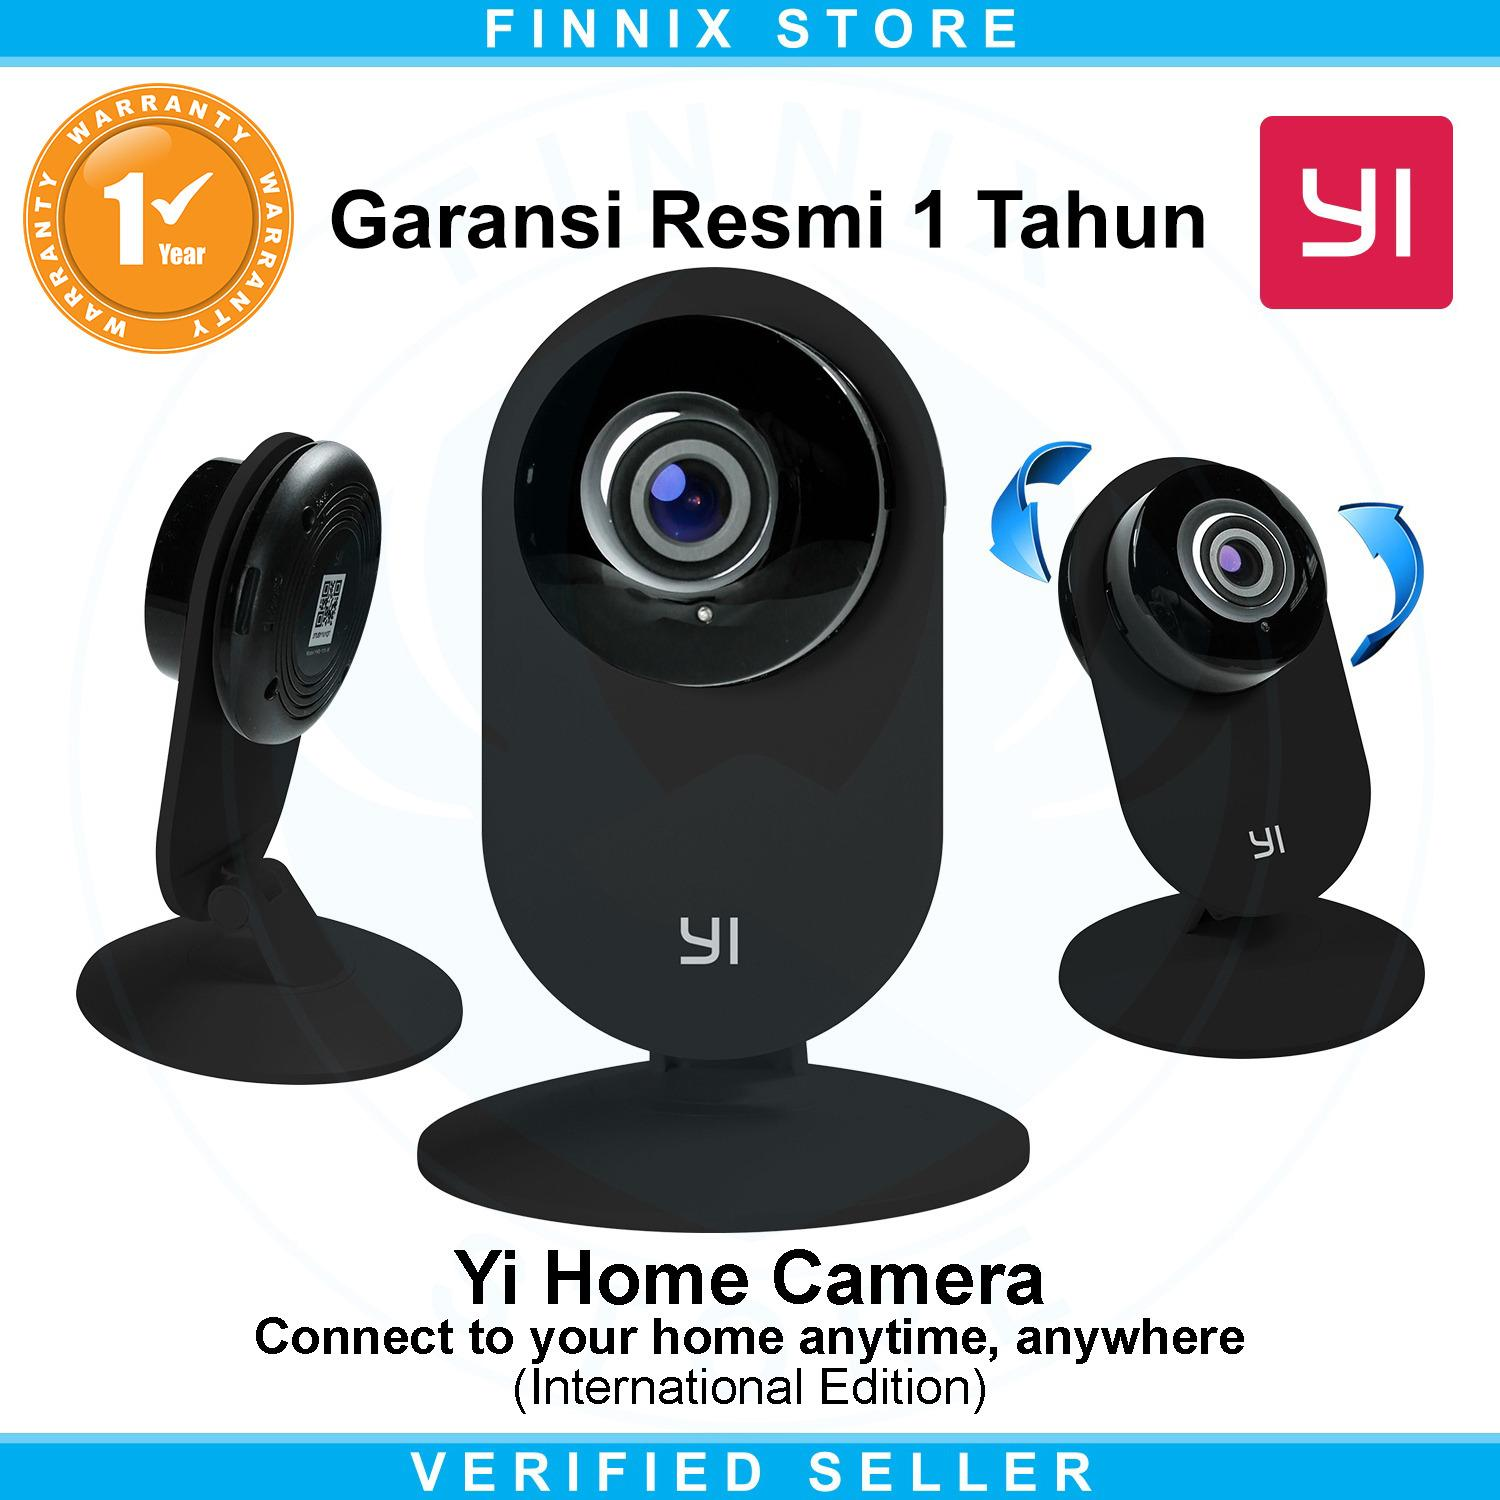 Cek Harga Baru Xiaomi Yi Smart Ip Camera Cctv 1080p Putih Terkini Original Dome 720p International Version White Home Hd